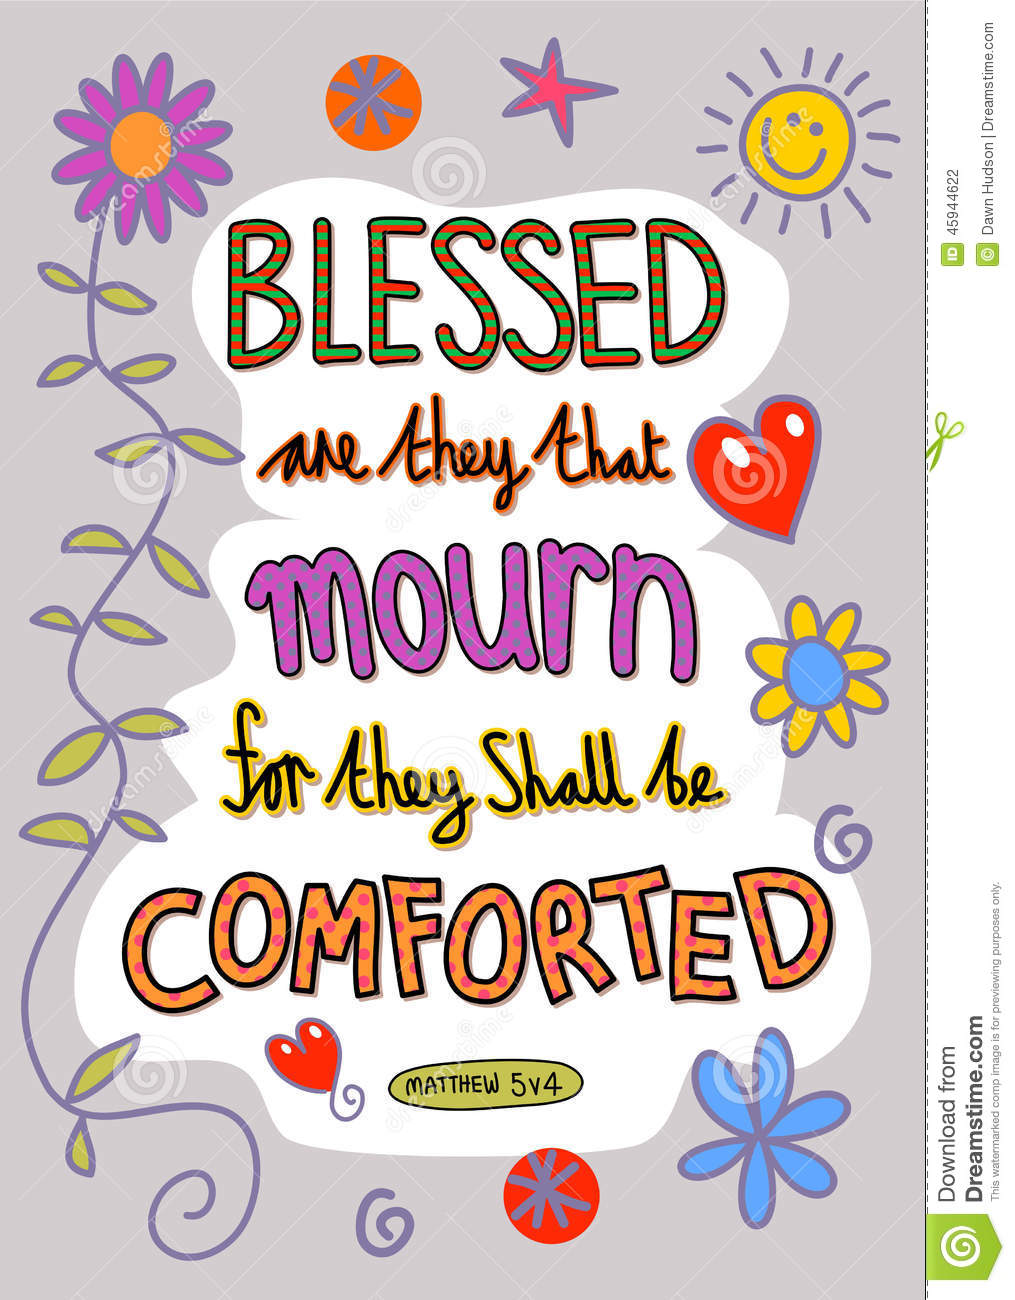 bible verse art stock illustration image 45944622